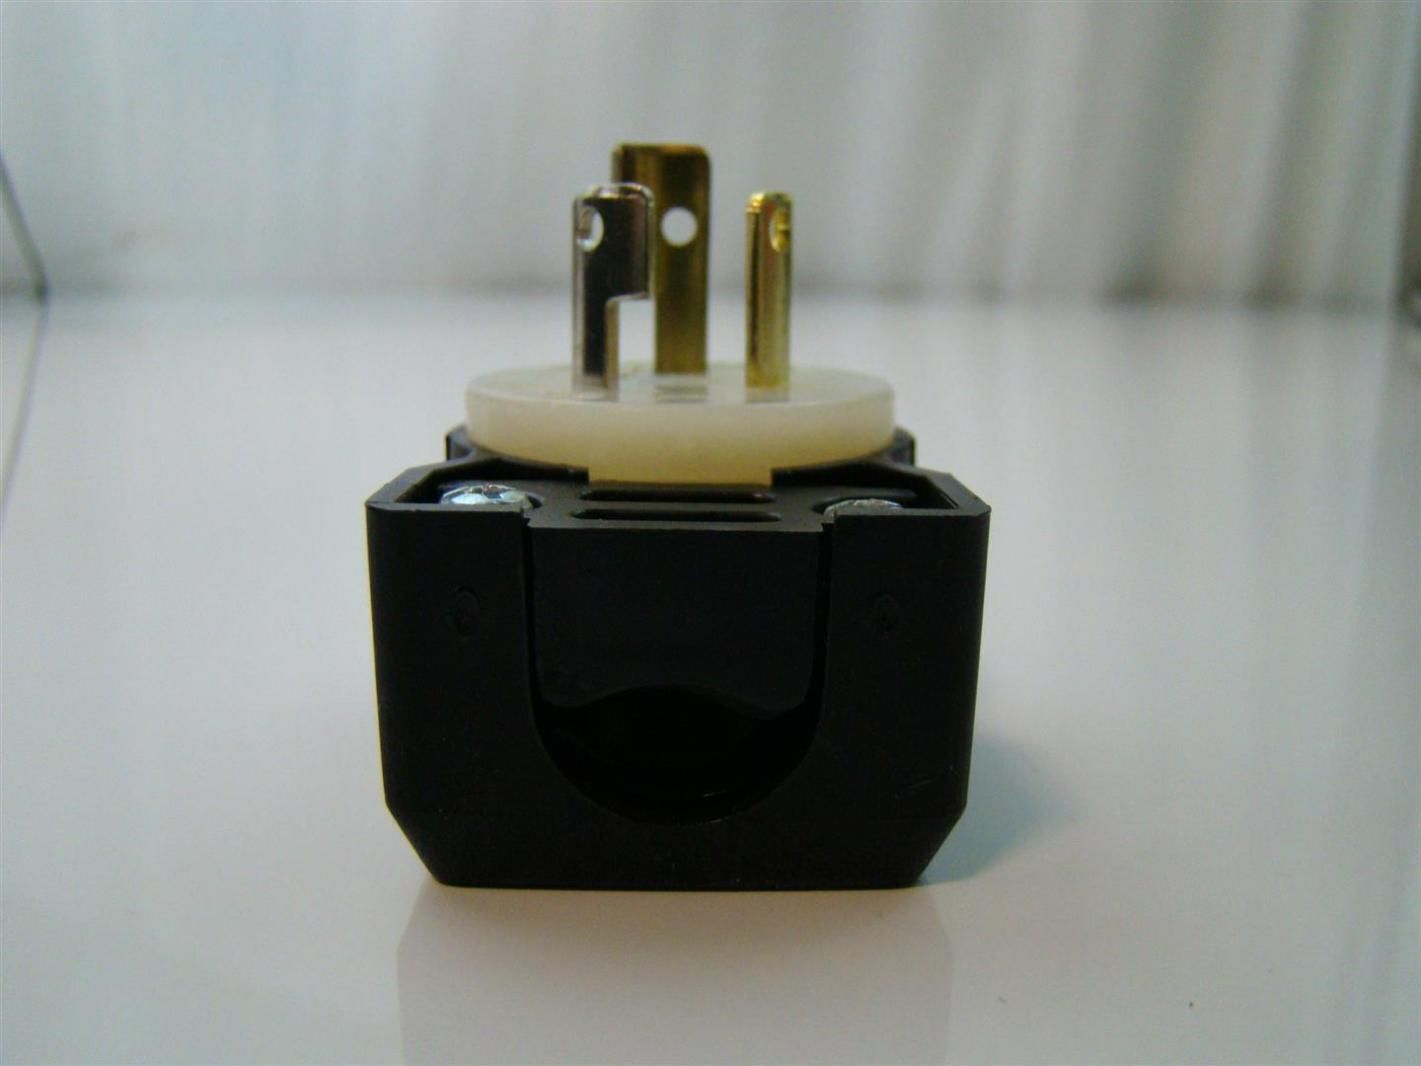 HUBBELL TWIST LOCK 15A 277VAC RECEPTACLE PLUG SOCKET WITH ROUND COVER PLATE